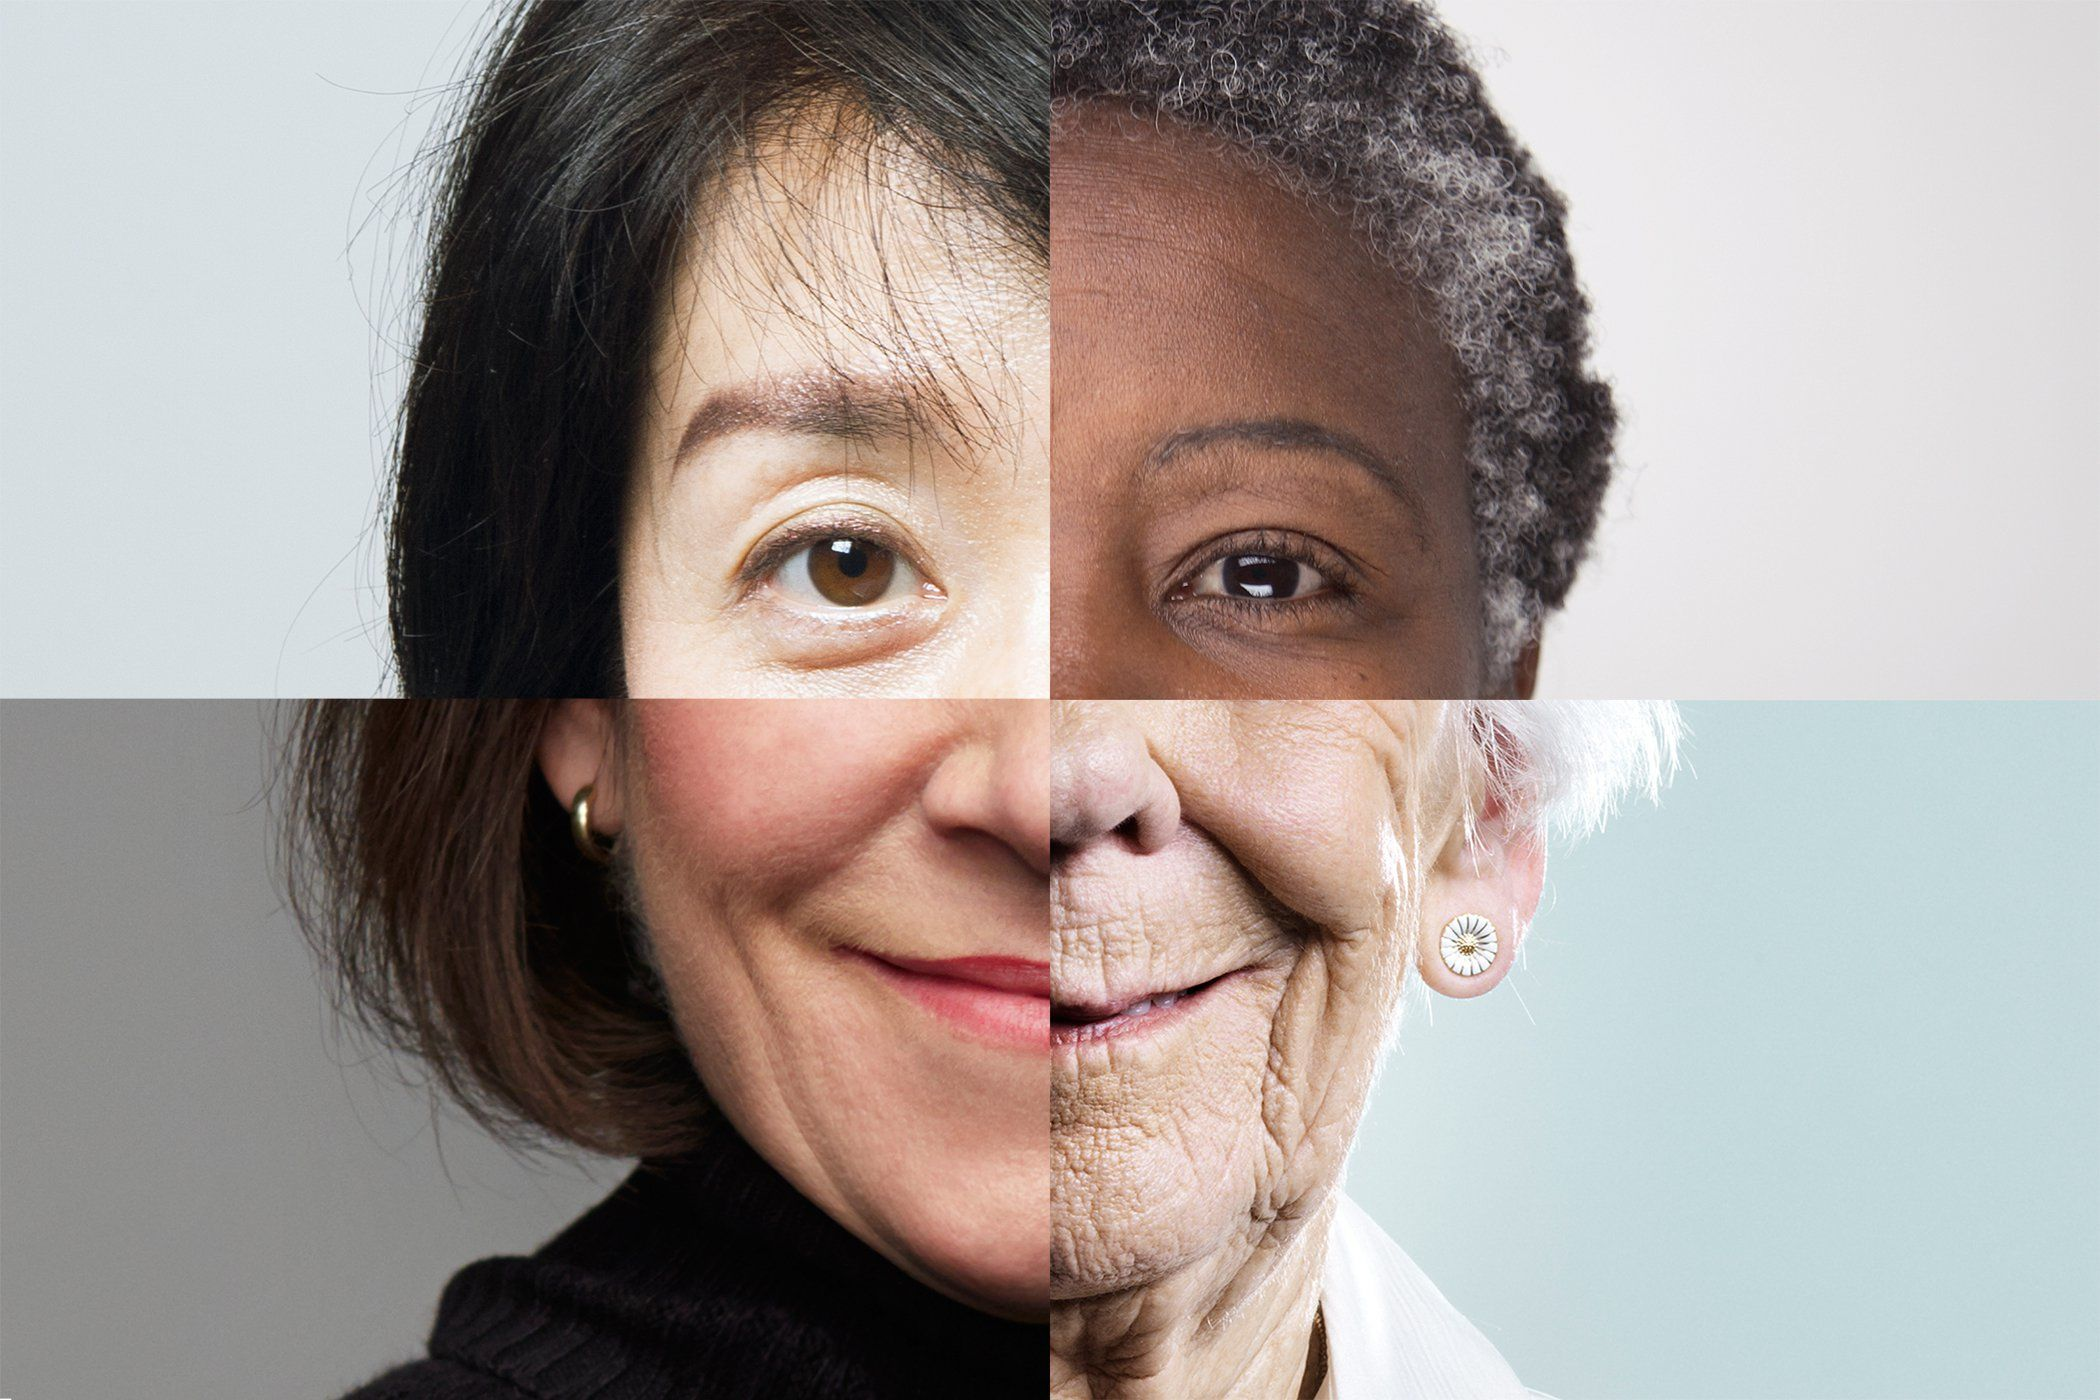 This Is the Age When You Become 'Old,' According to Four Different Generations